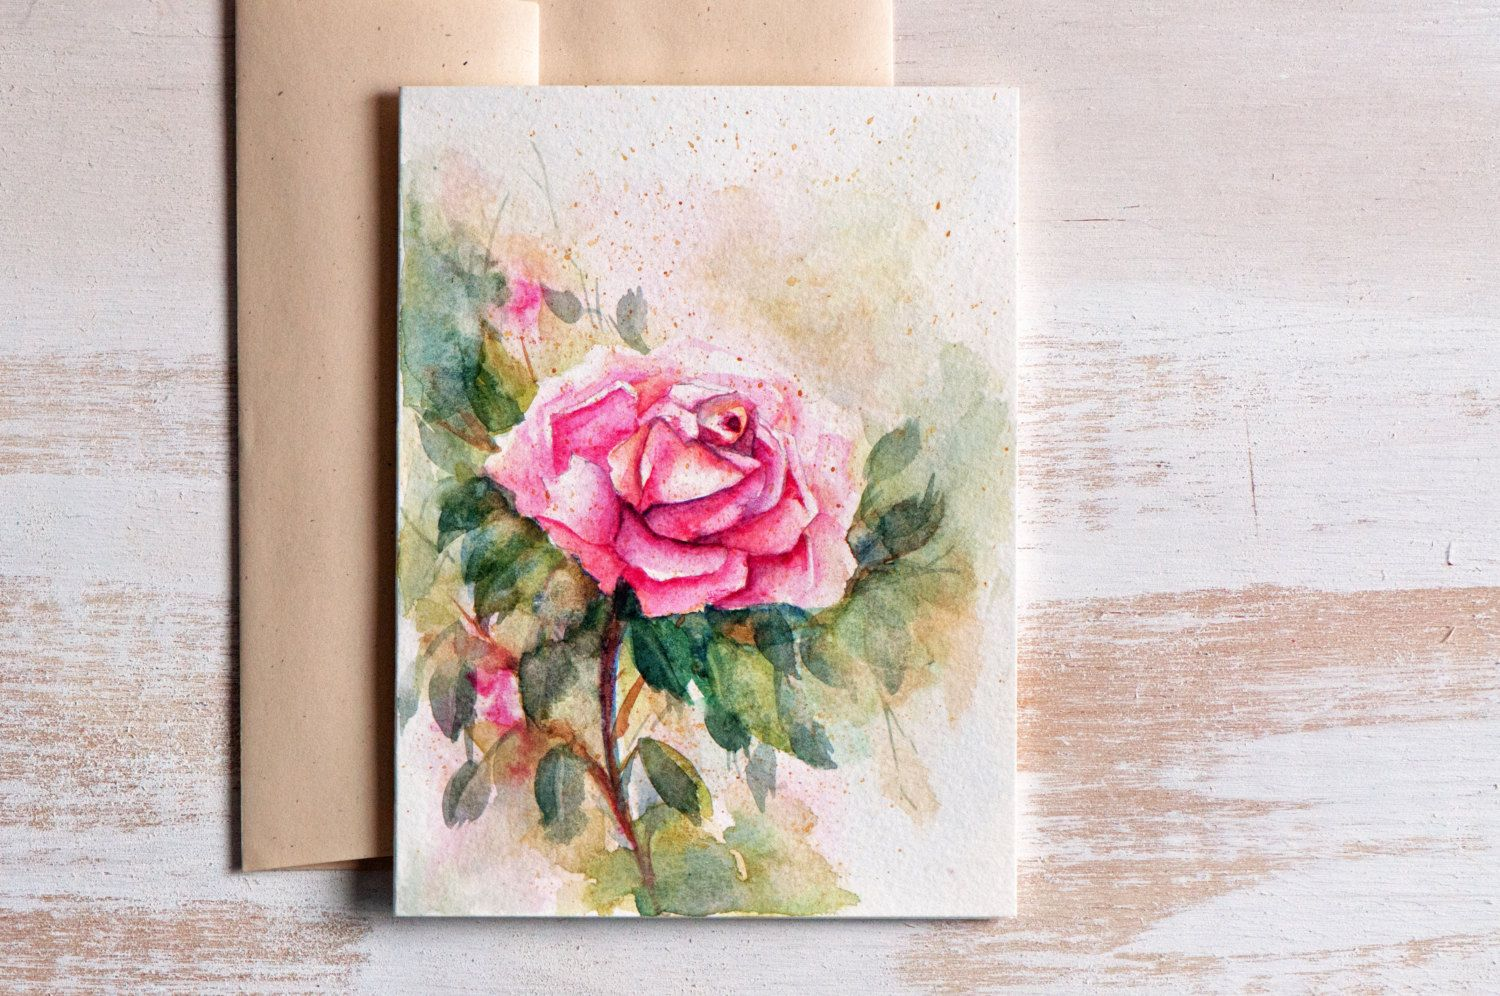 Watercolor mothers day card floralhand painted watercolor cards watercolor card hand painted original art birthday card anniversary pink flowers painting blank greeting card rose izmirmasajfo Choice Image